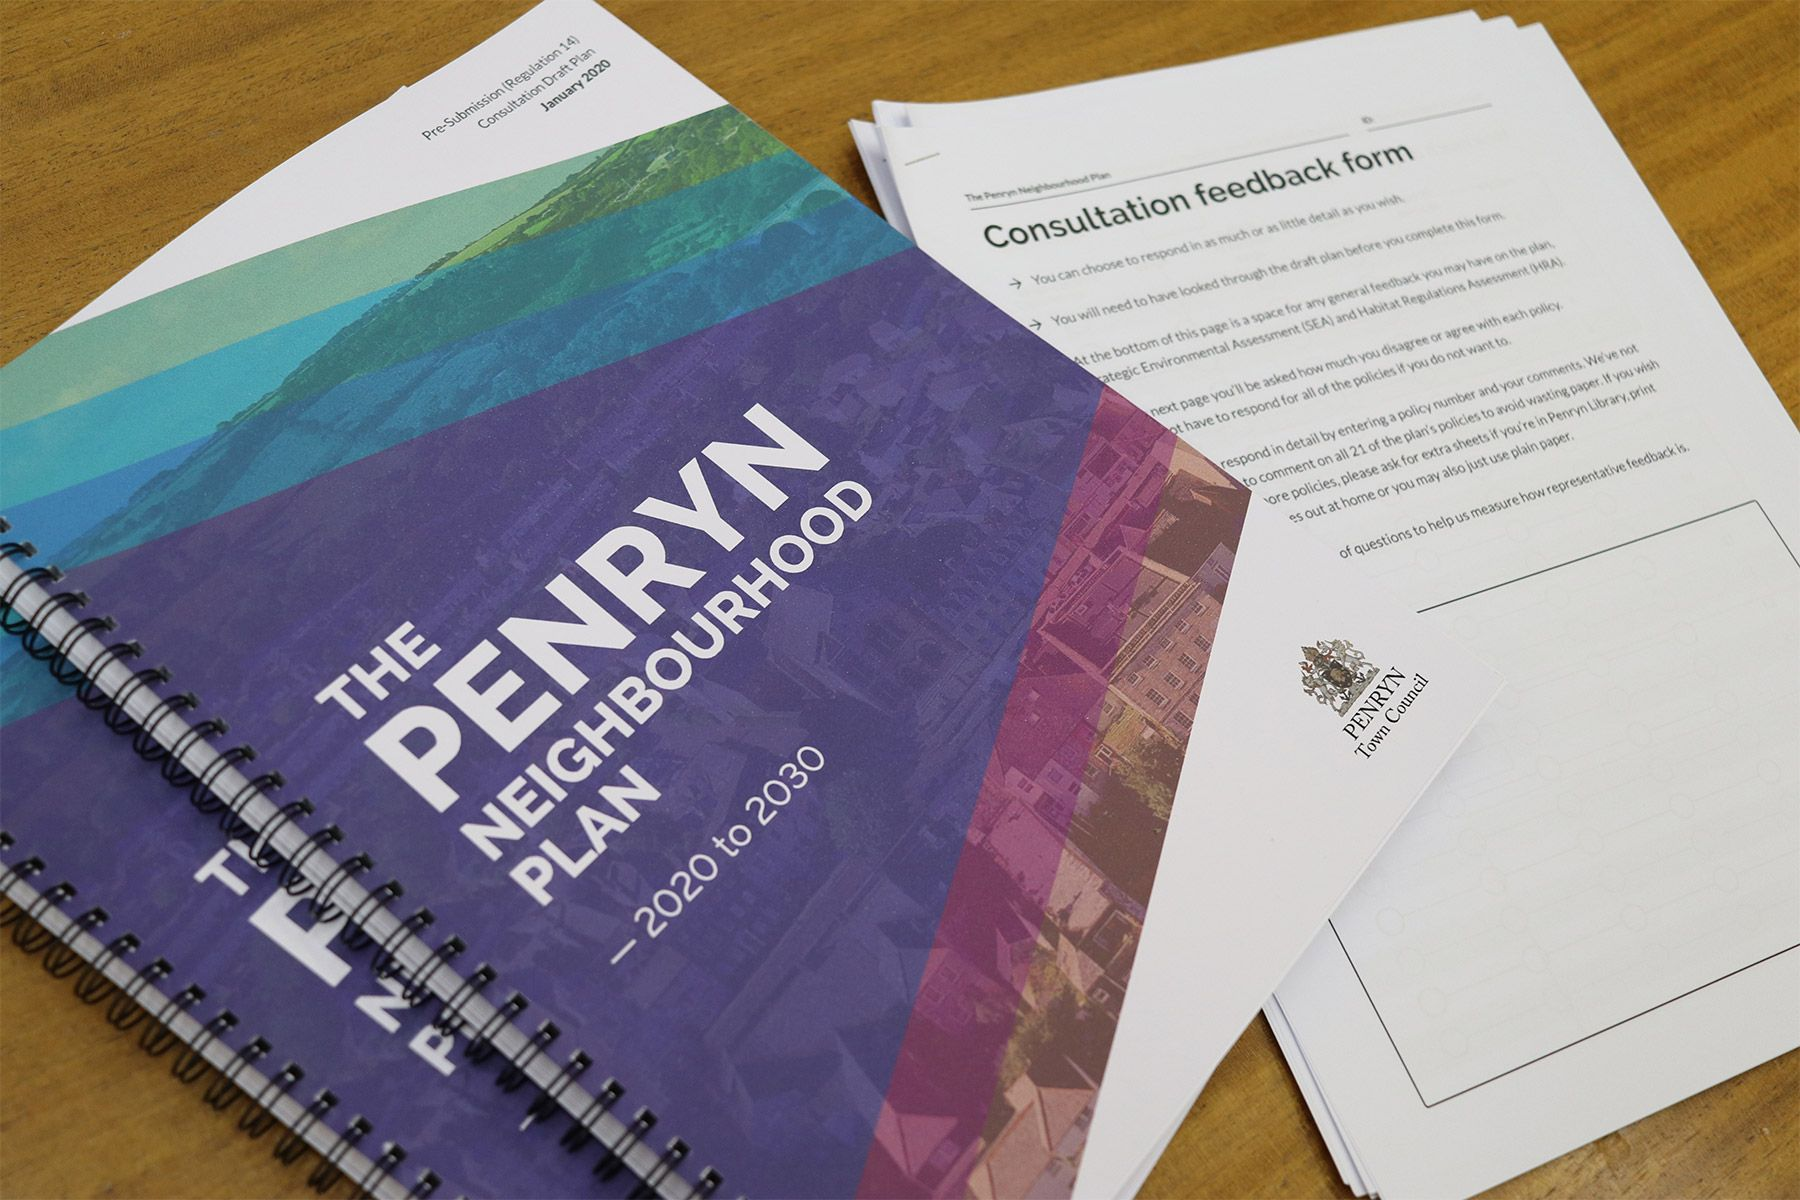 Printed copies of the Penryn Neighbourhood Plan alongside some paper feedback forms